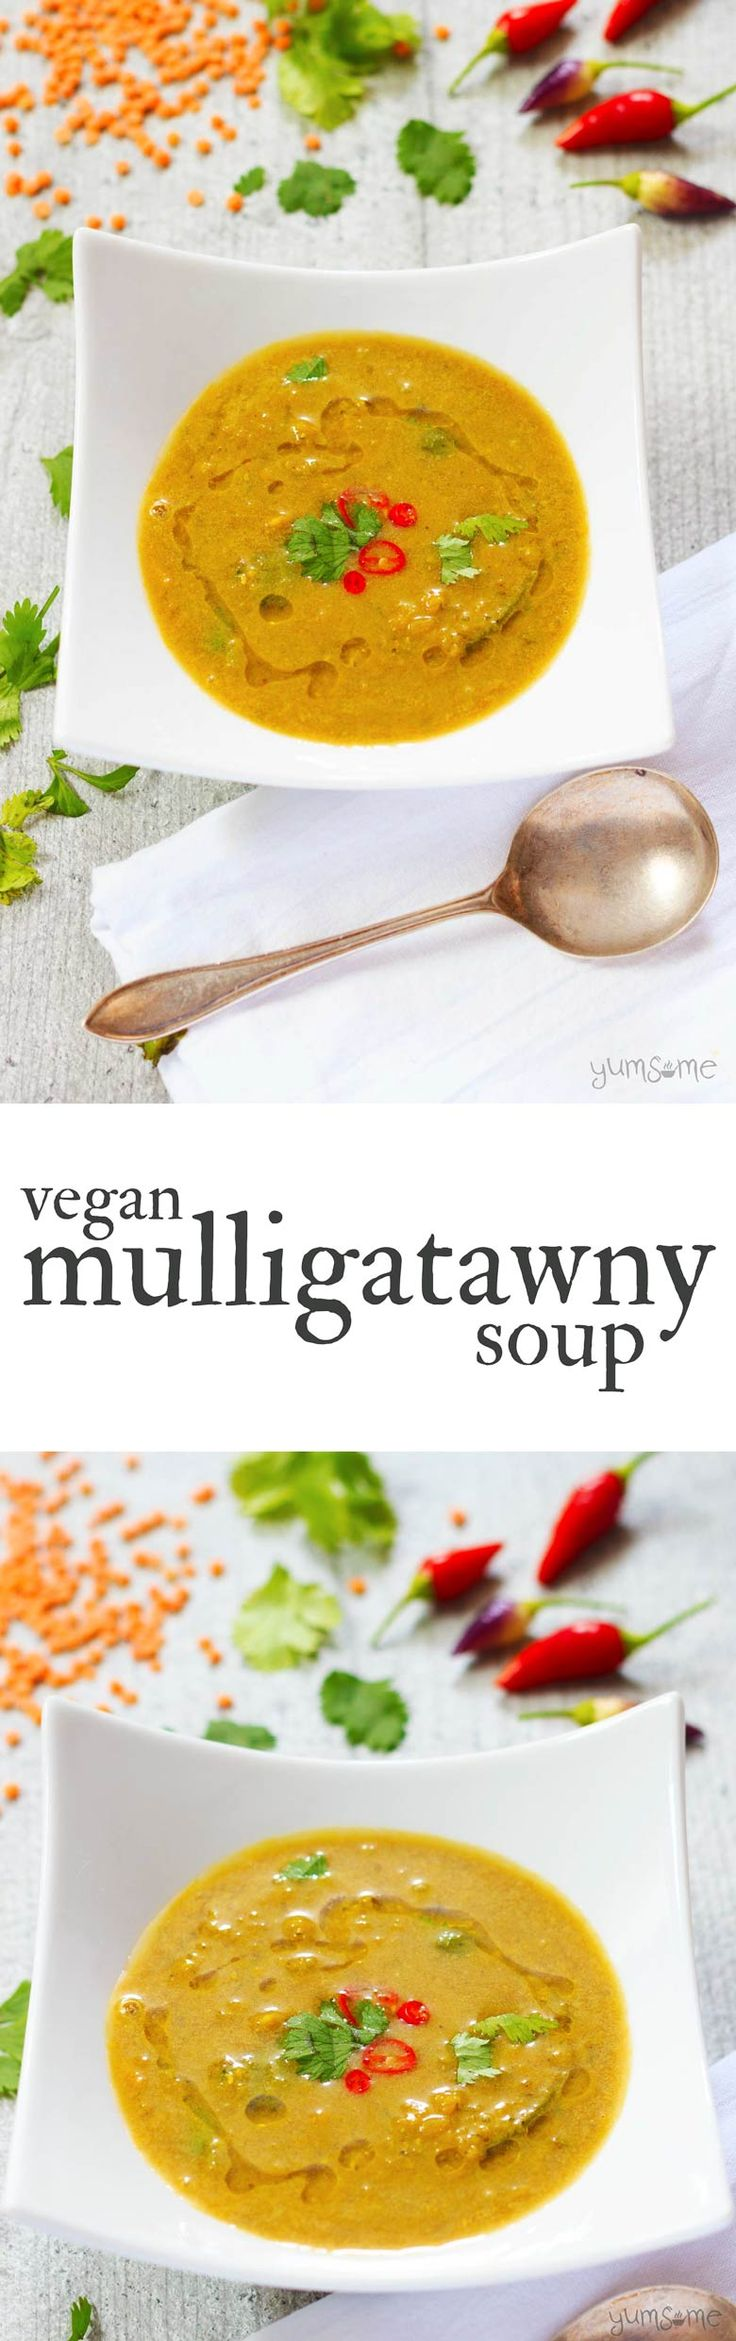 Spicy, warming, filling, delicious, and full of fibre and protein, my vegan mulligatawny soup is just the thing for chilly autumn evenings. | yumsome.com